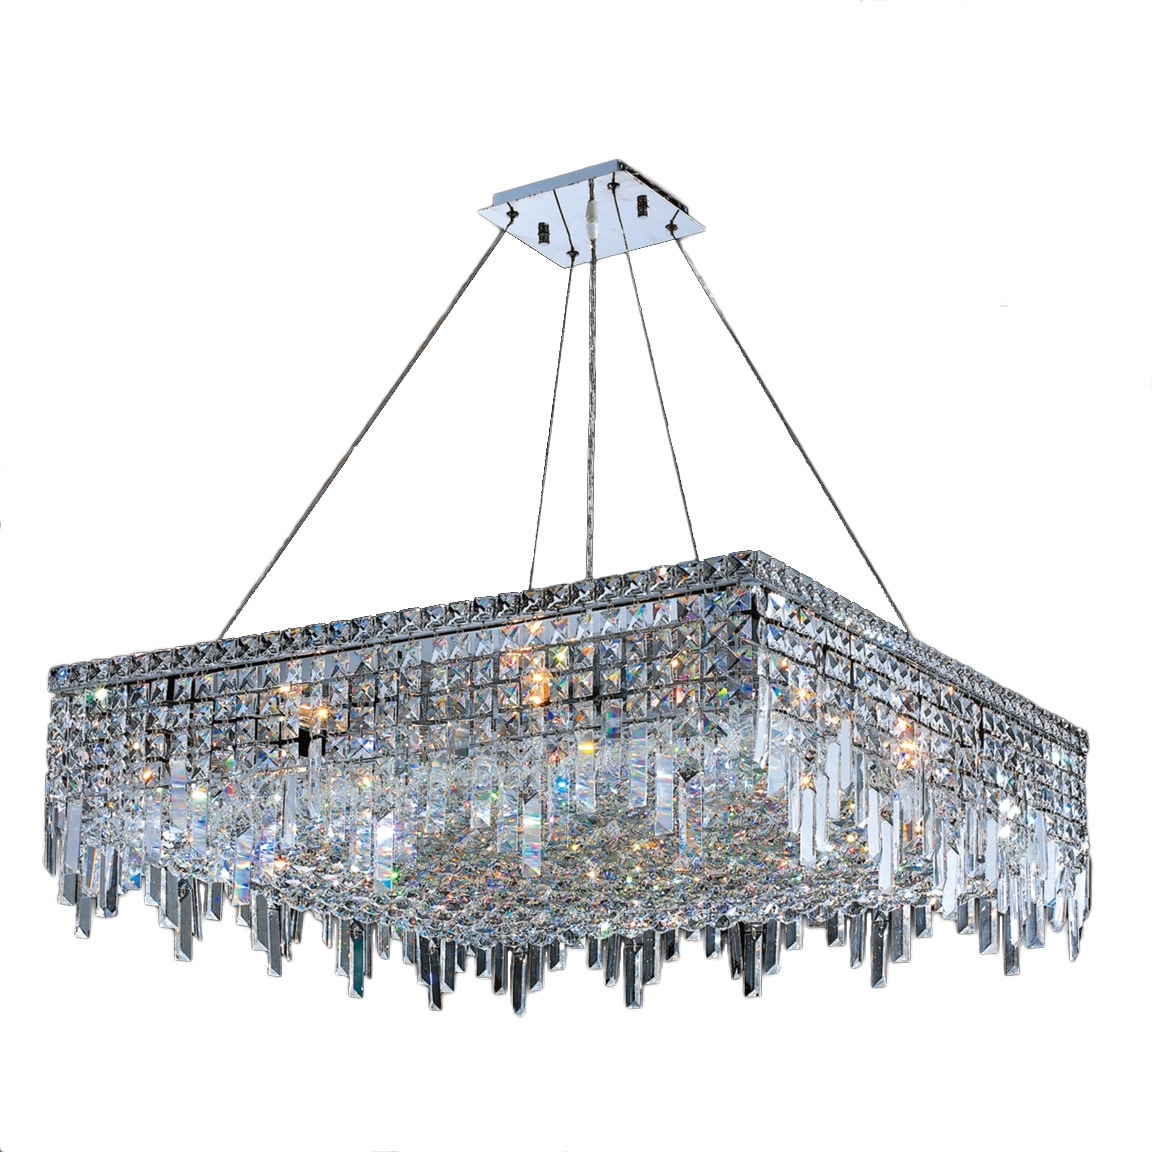 Glam art deco style collection 12 light chrome finish crystal square glam art deco style collection 12 light chrome finish crystal square flush mount chandelier 32 l x 32 w x 105 h large free shipping today arubaitofo Gallery